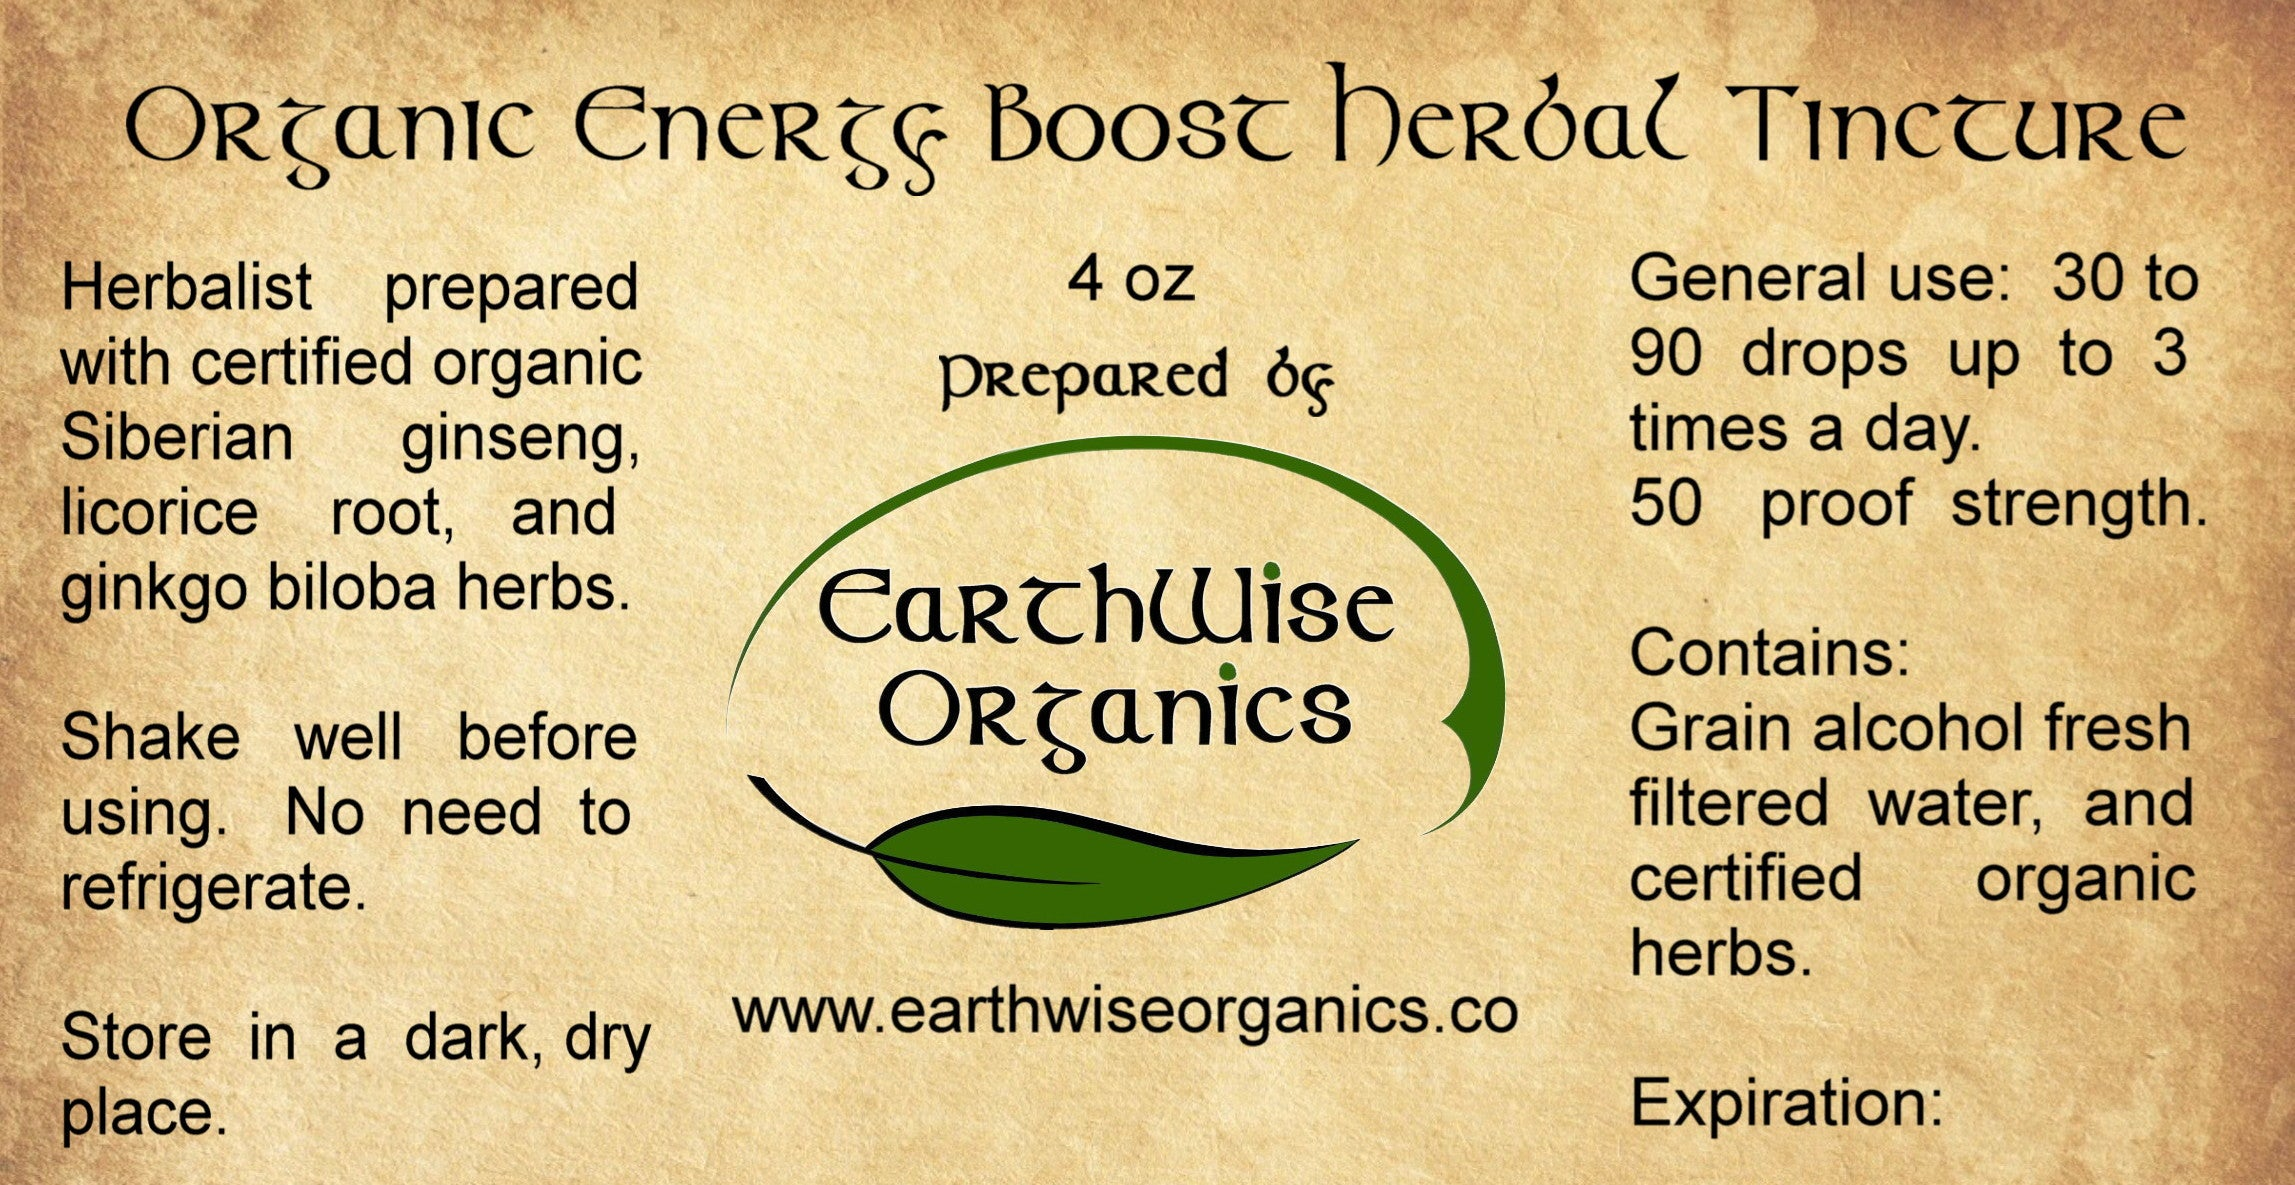 Energy boost organic herbal tincture label